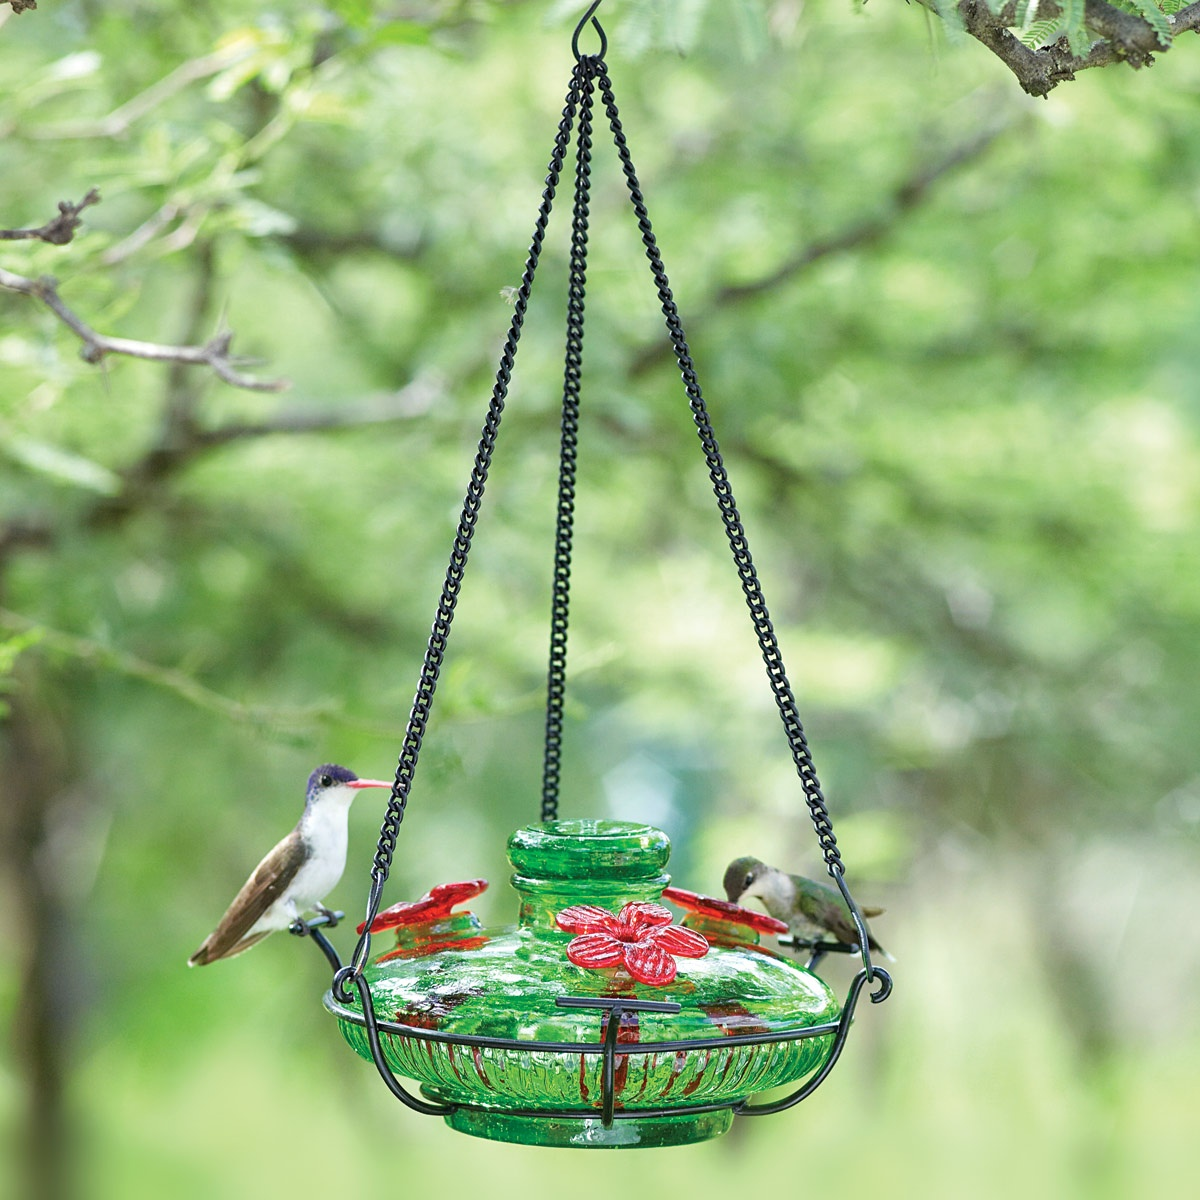 sale full feeder glass window cool feeders for decorative image blown amazon impressive wbu hummingbird